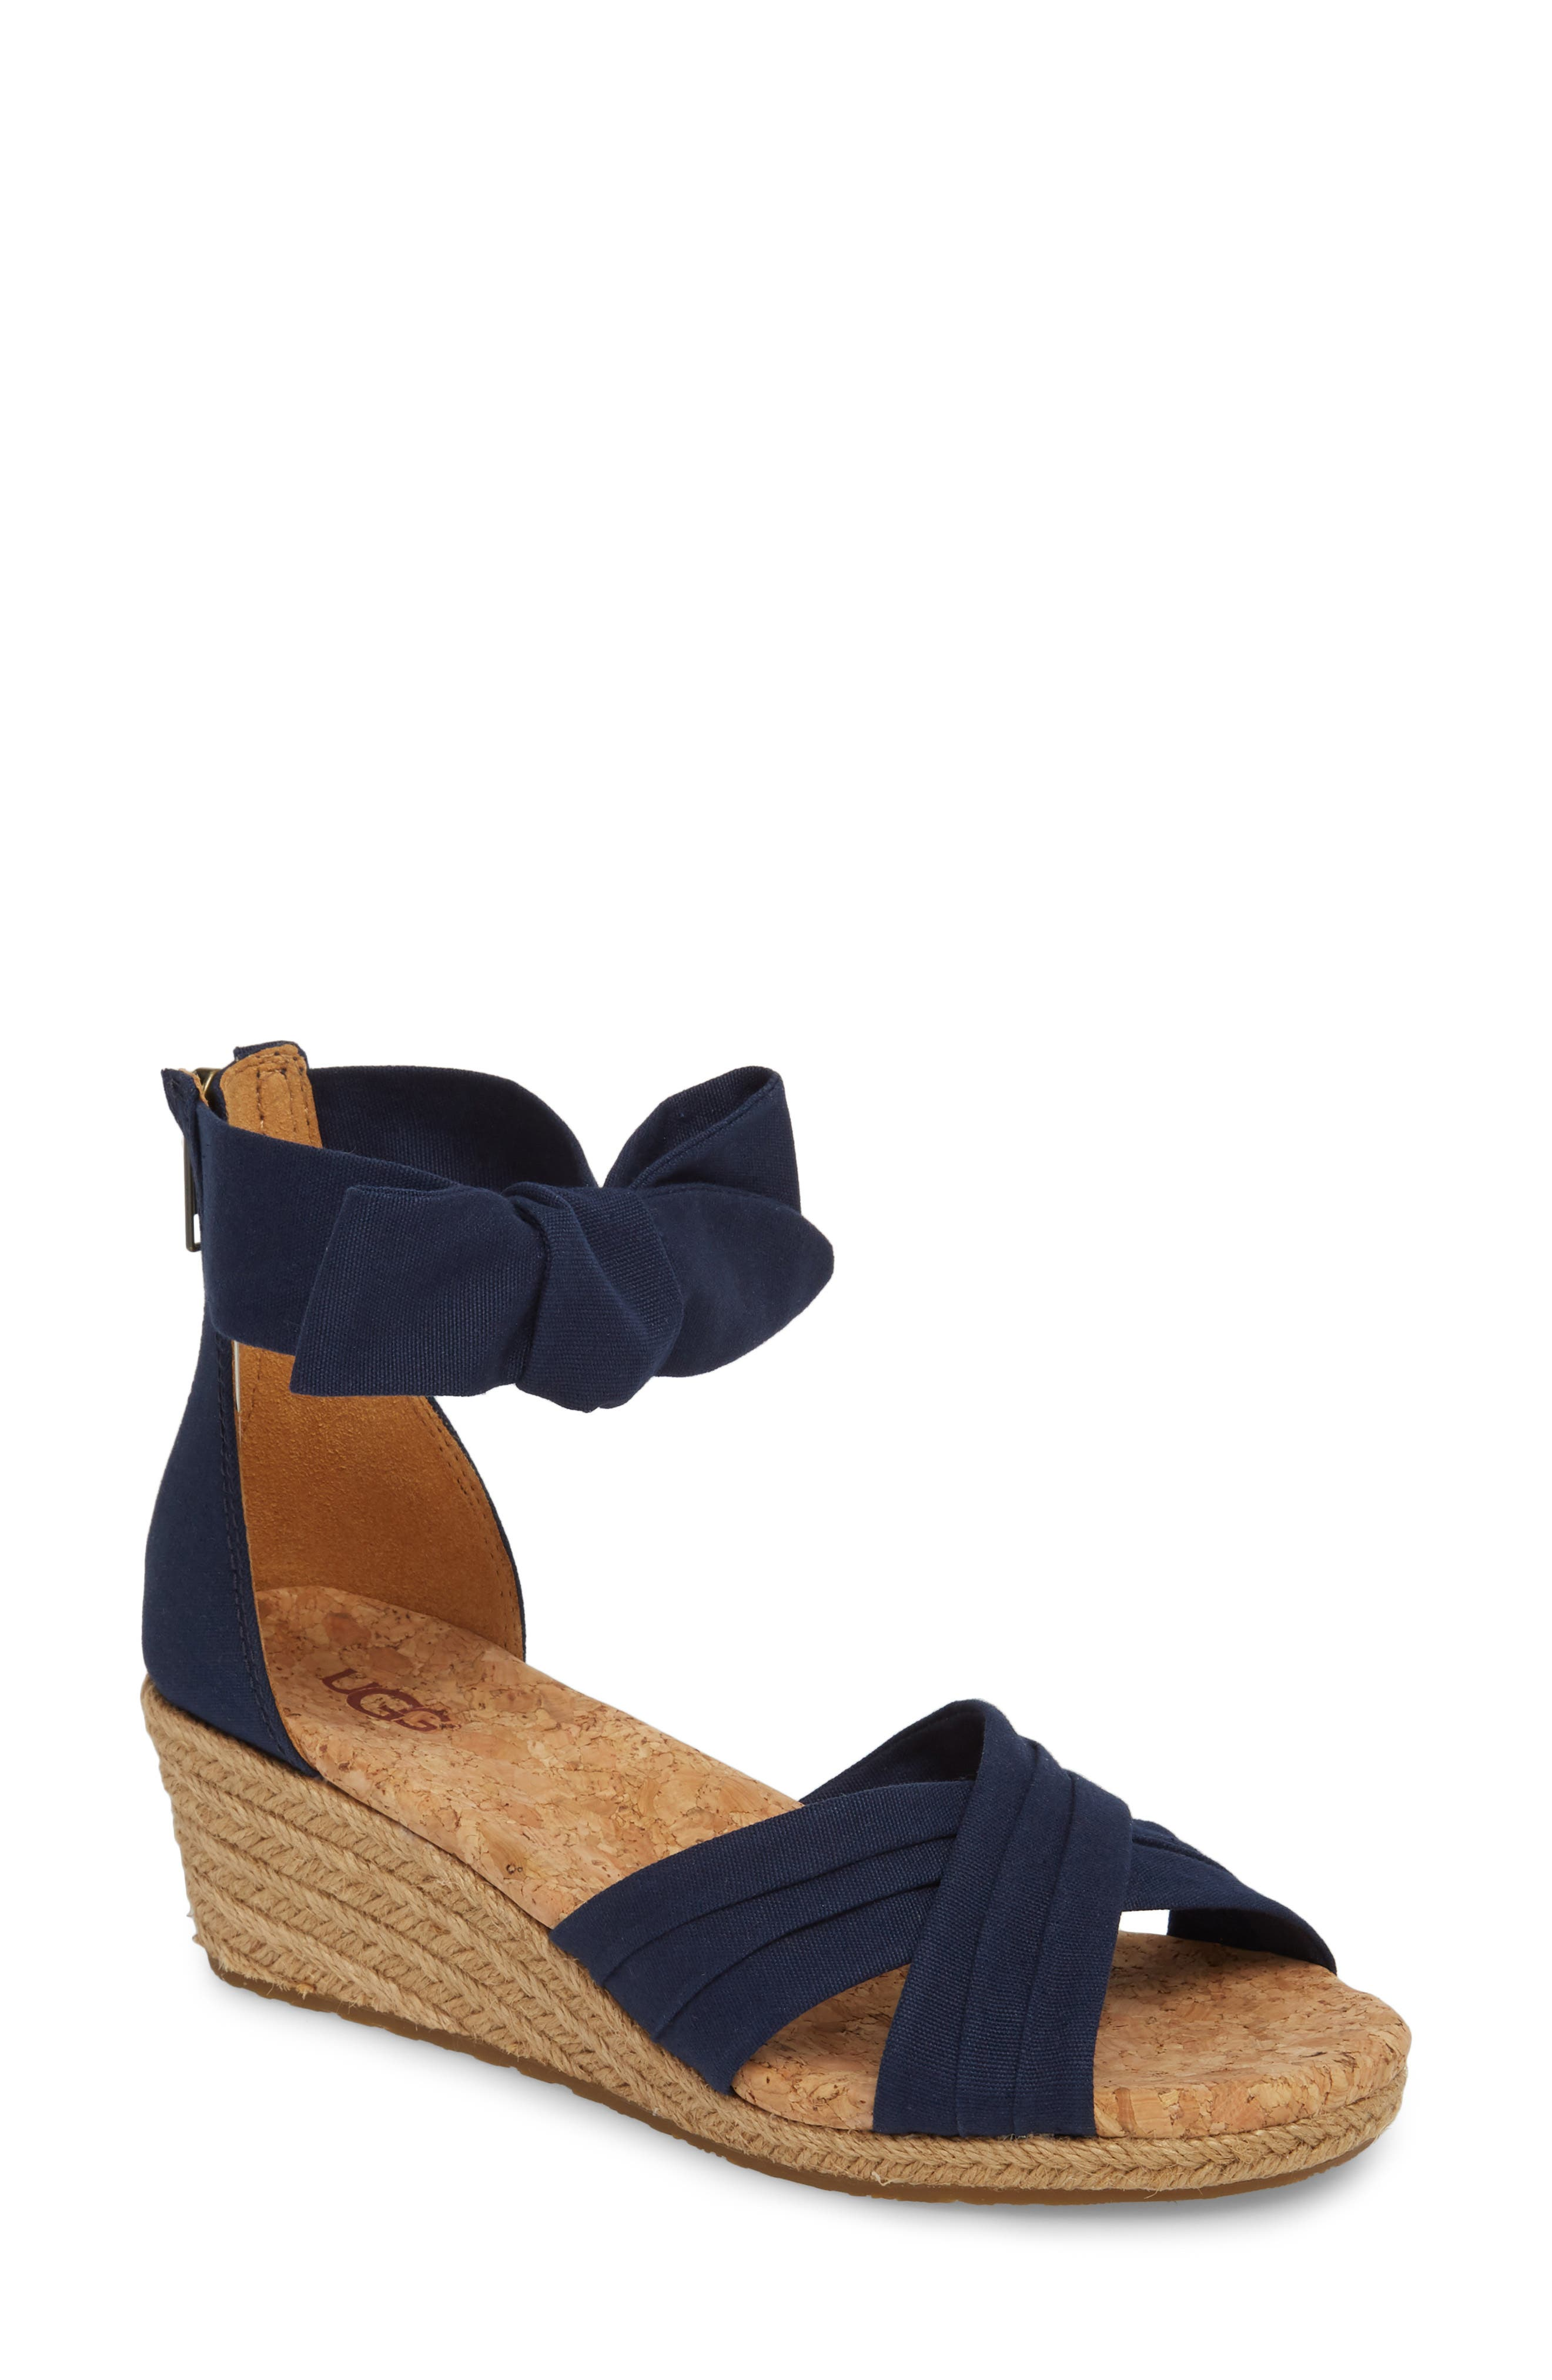 Traci Espadrille Wedge Sandal,                         Main,                         color, Navy